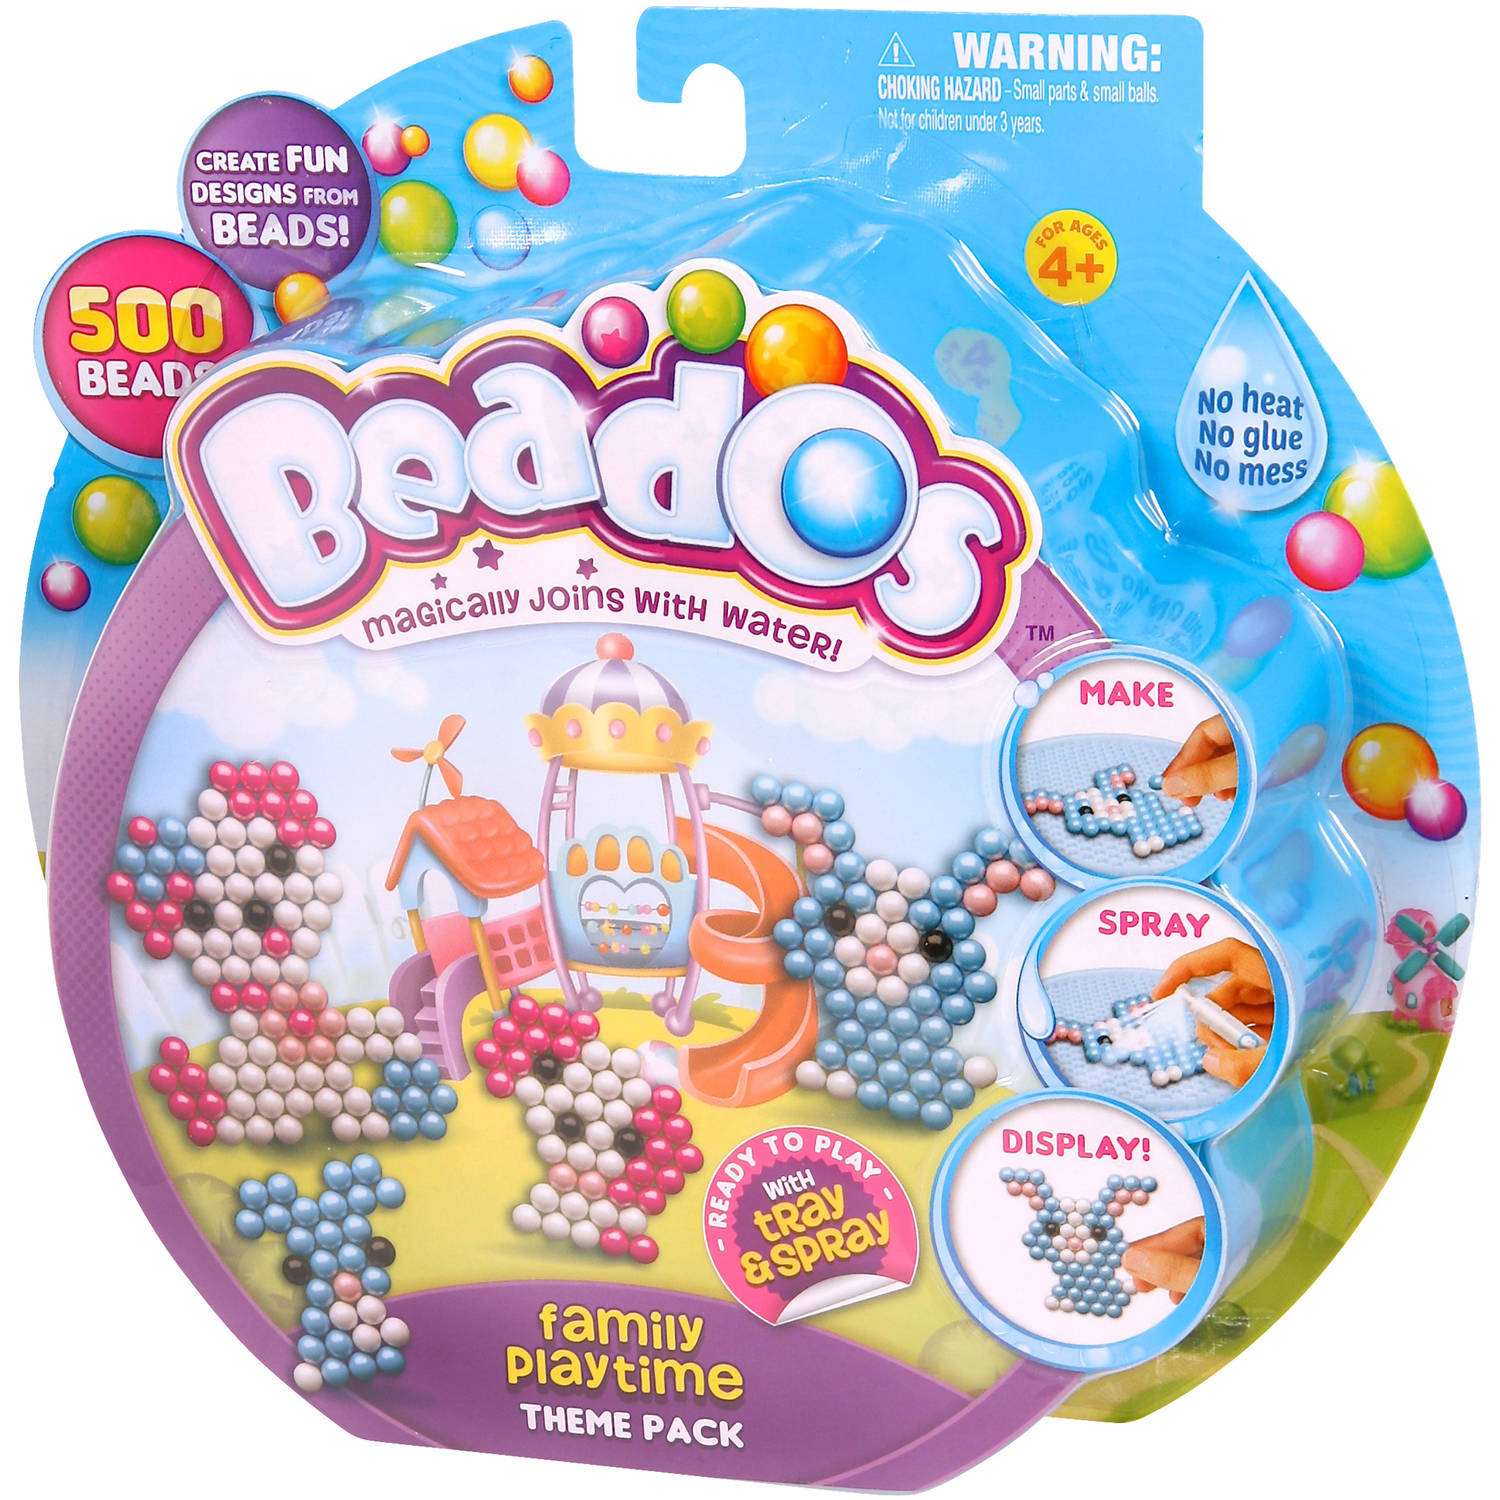 Moose Toys Beados Season 3 Theme Pack, Family Playtime